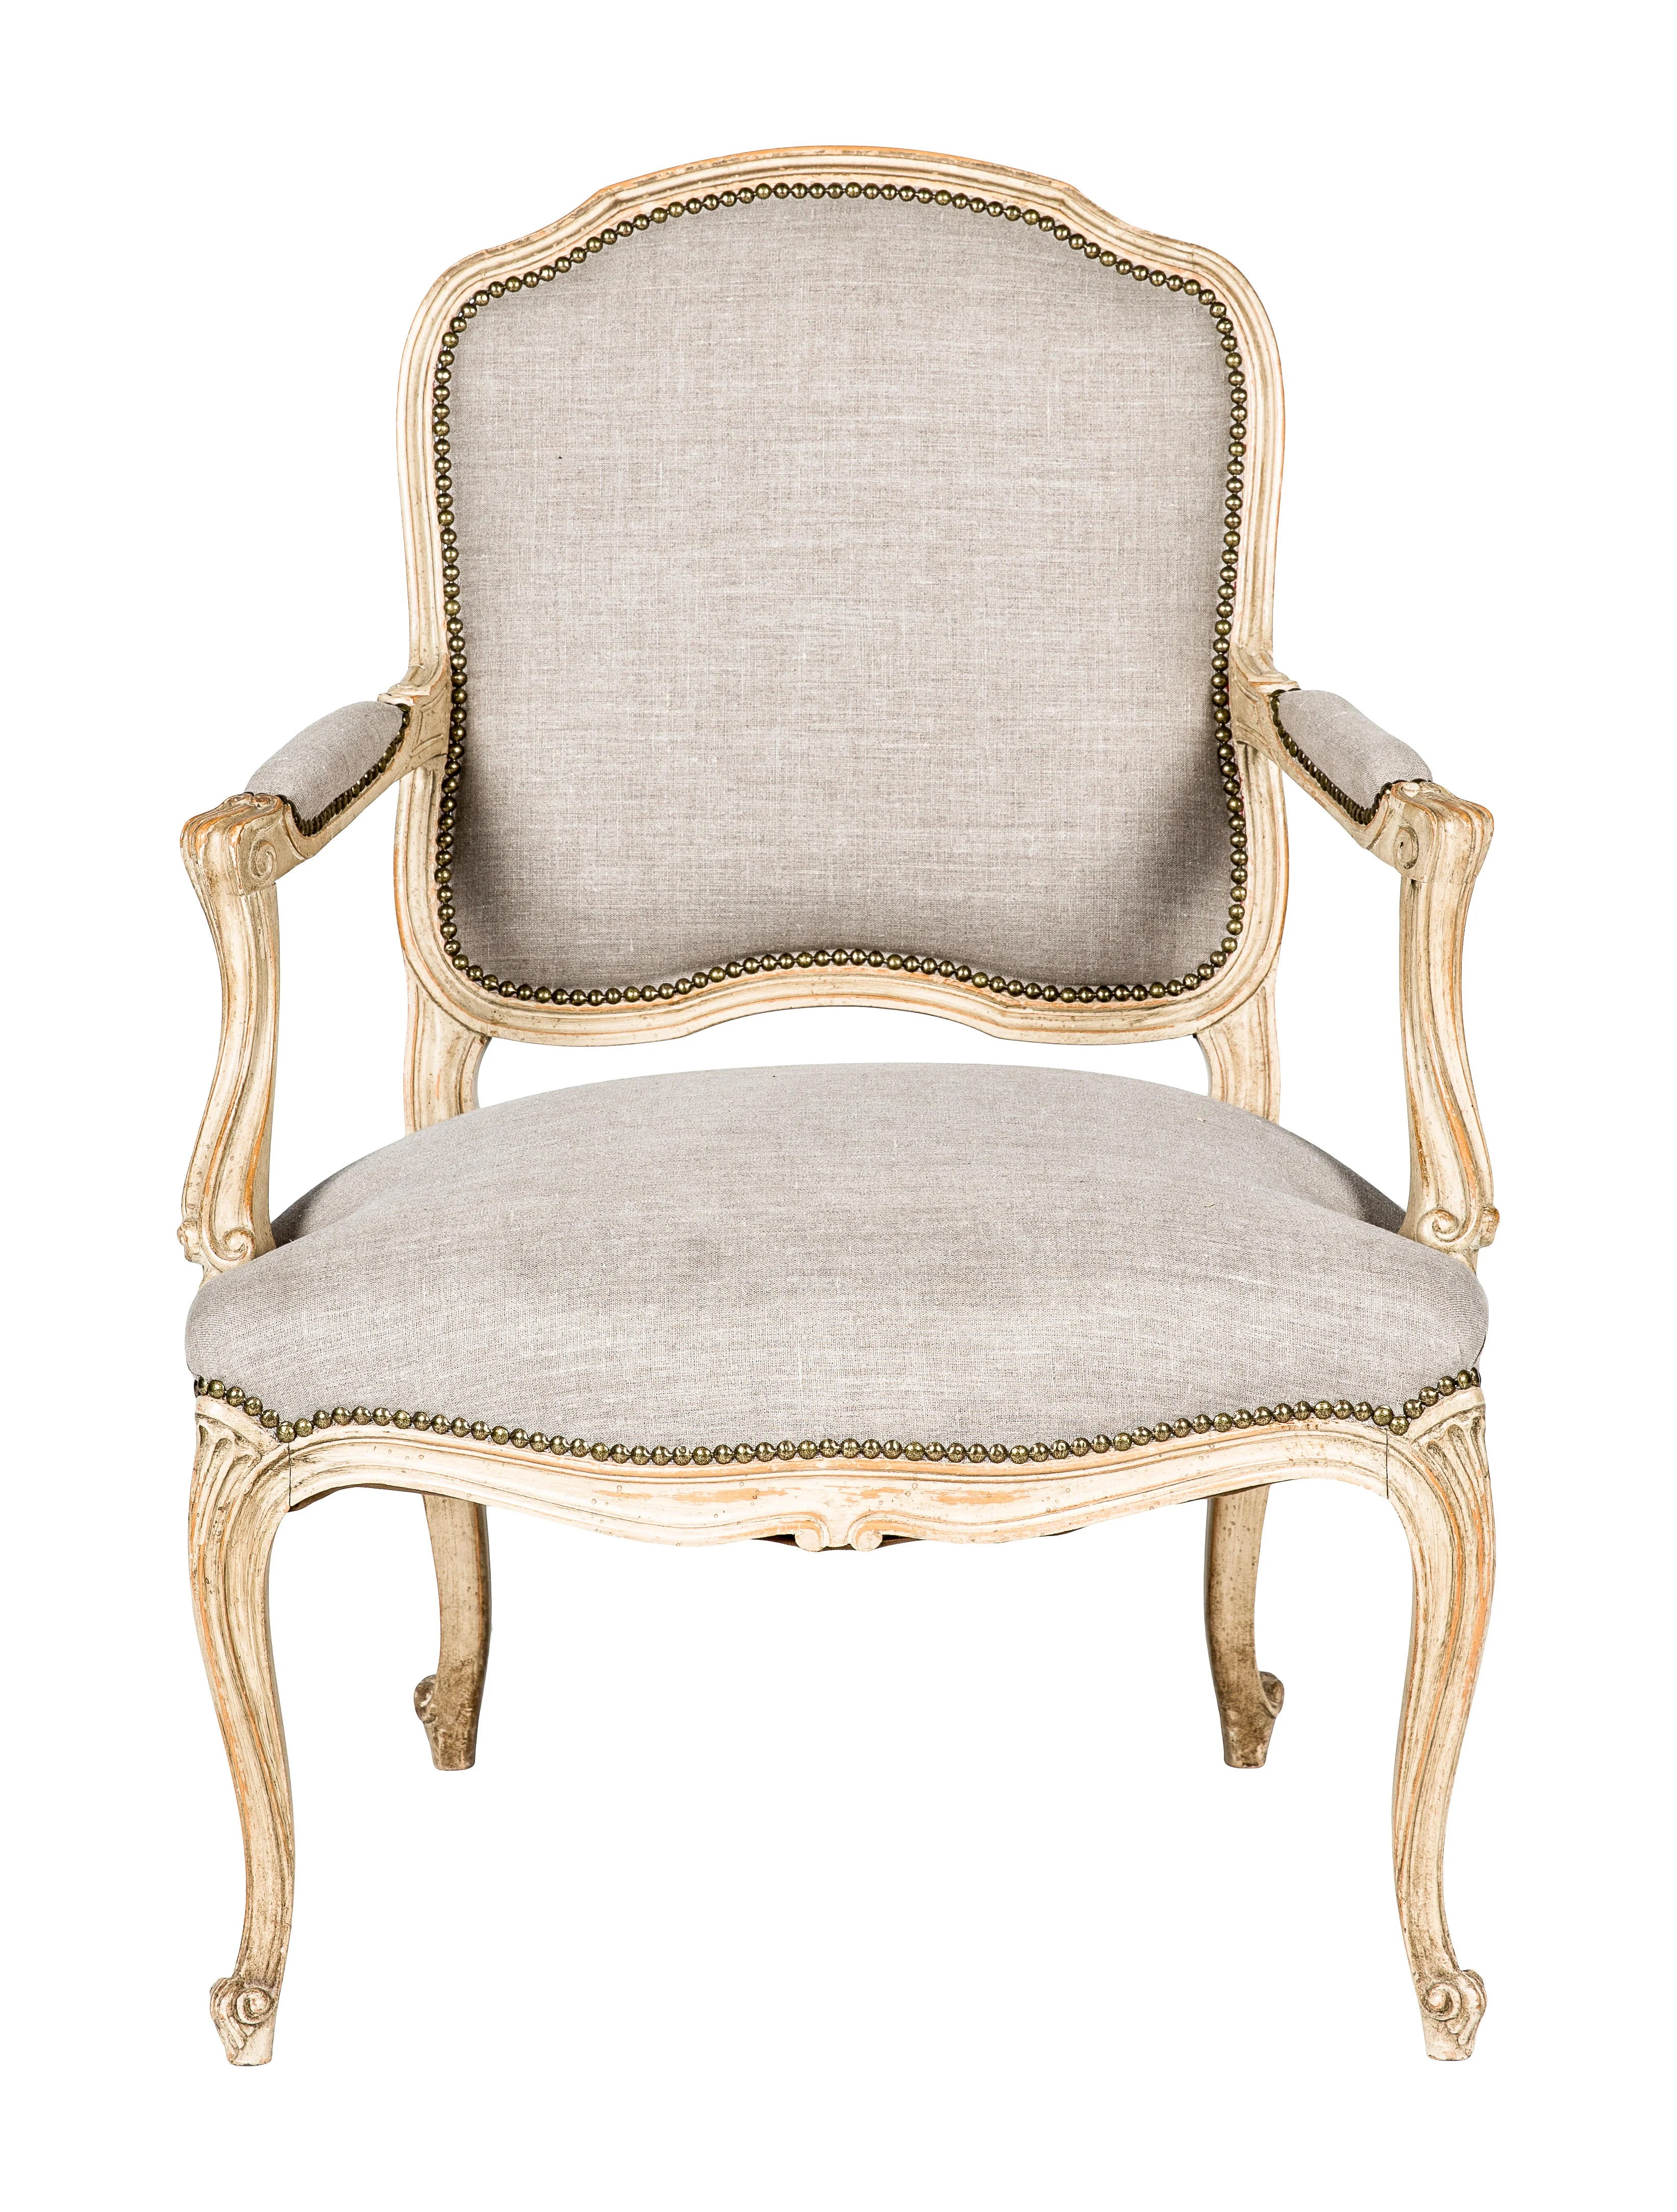 recliner accent chairs upholstered dining chair with arms louis xv style furniture